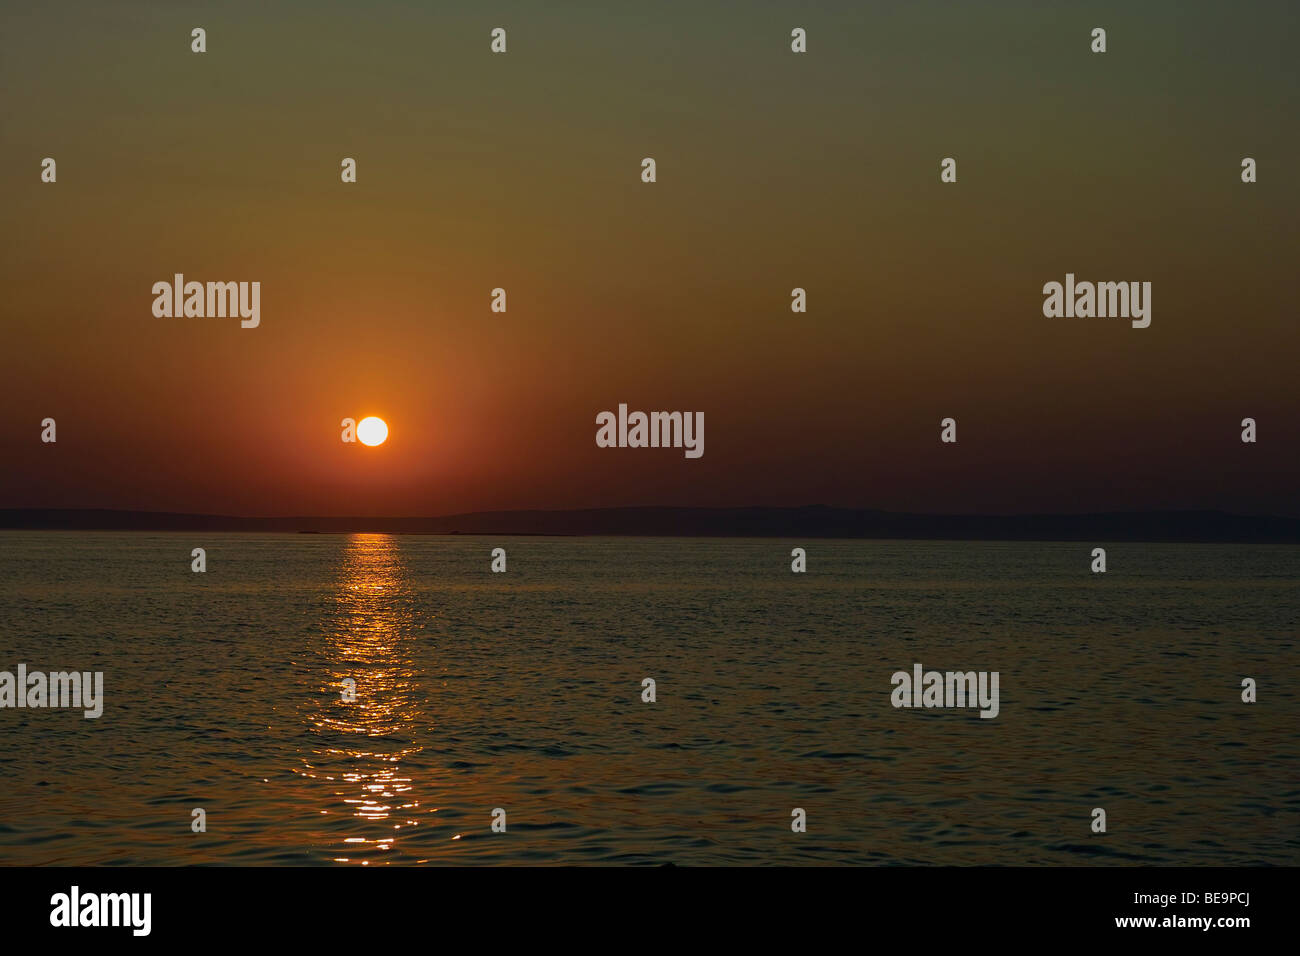 Beautiful sunset on island of Pag, Croatia, with a sun reflection on sea surface - Stock Image